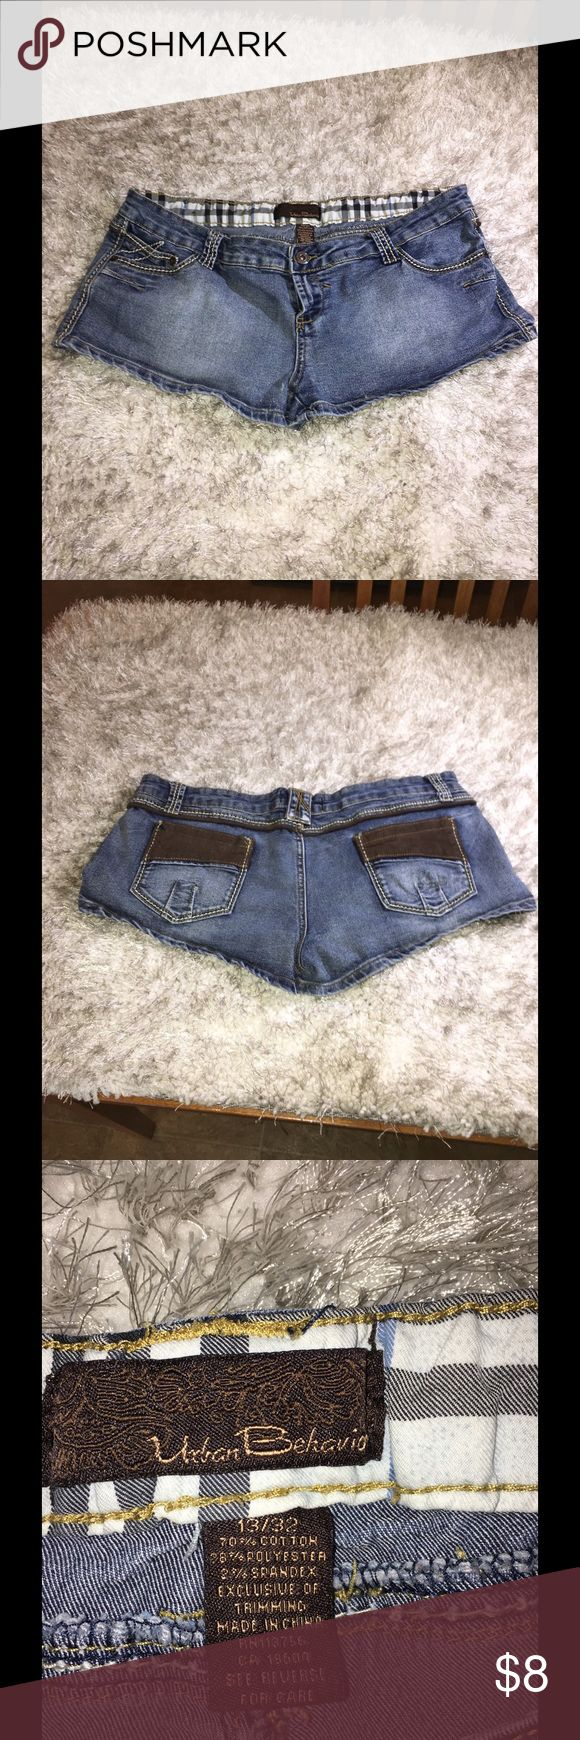 Urban Behavior Size 13 Denim Shorts Short- shorts by Urban Behavior.  Size 13.  Medium blue rinse color.  Good condition.  Important:   All items are freshly laundered as applicable prior to shipping (new items and shoes excluded).  Not all my items are from pet/smoke free homes.  Price is reduced to reflect this!   Thank you for looking! Urban Behavior Shorts Jean Shorts